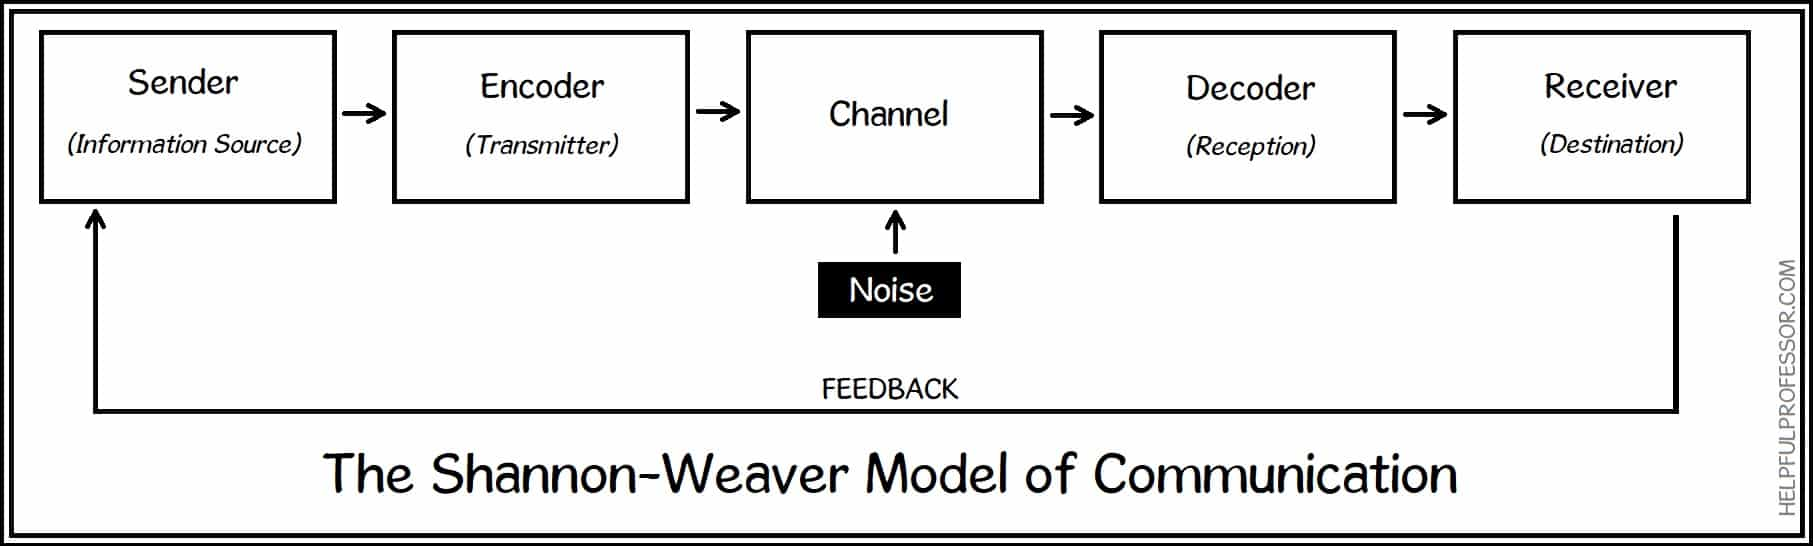 shannon weaver model of communication